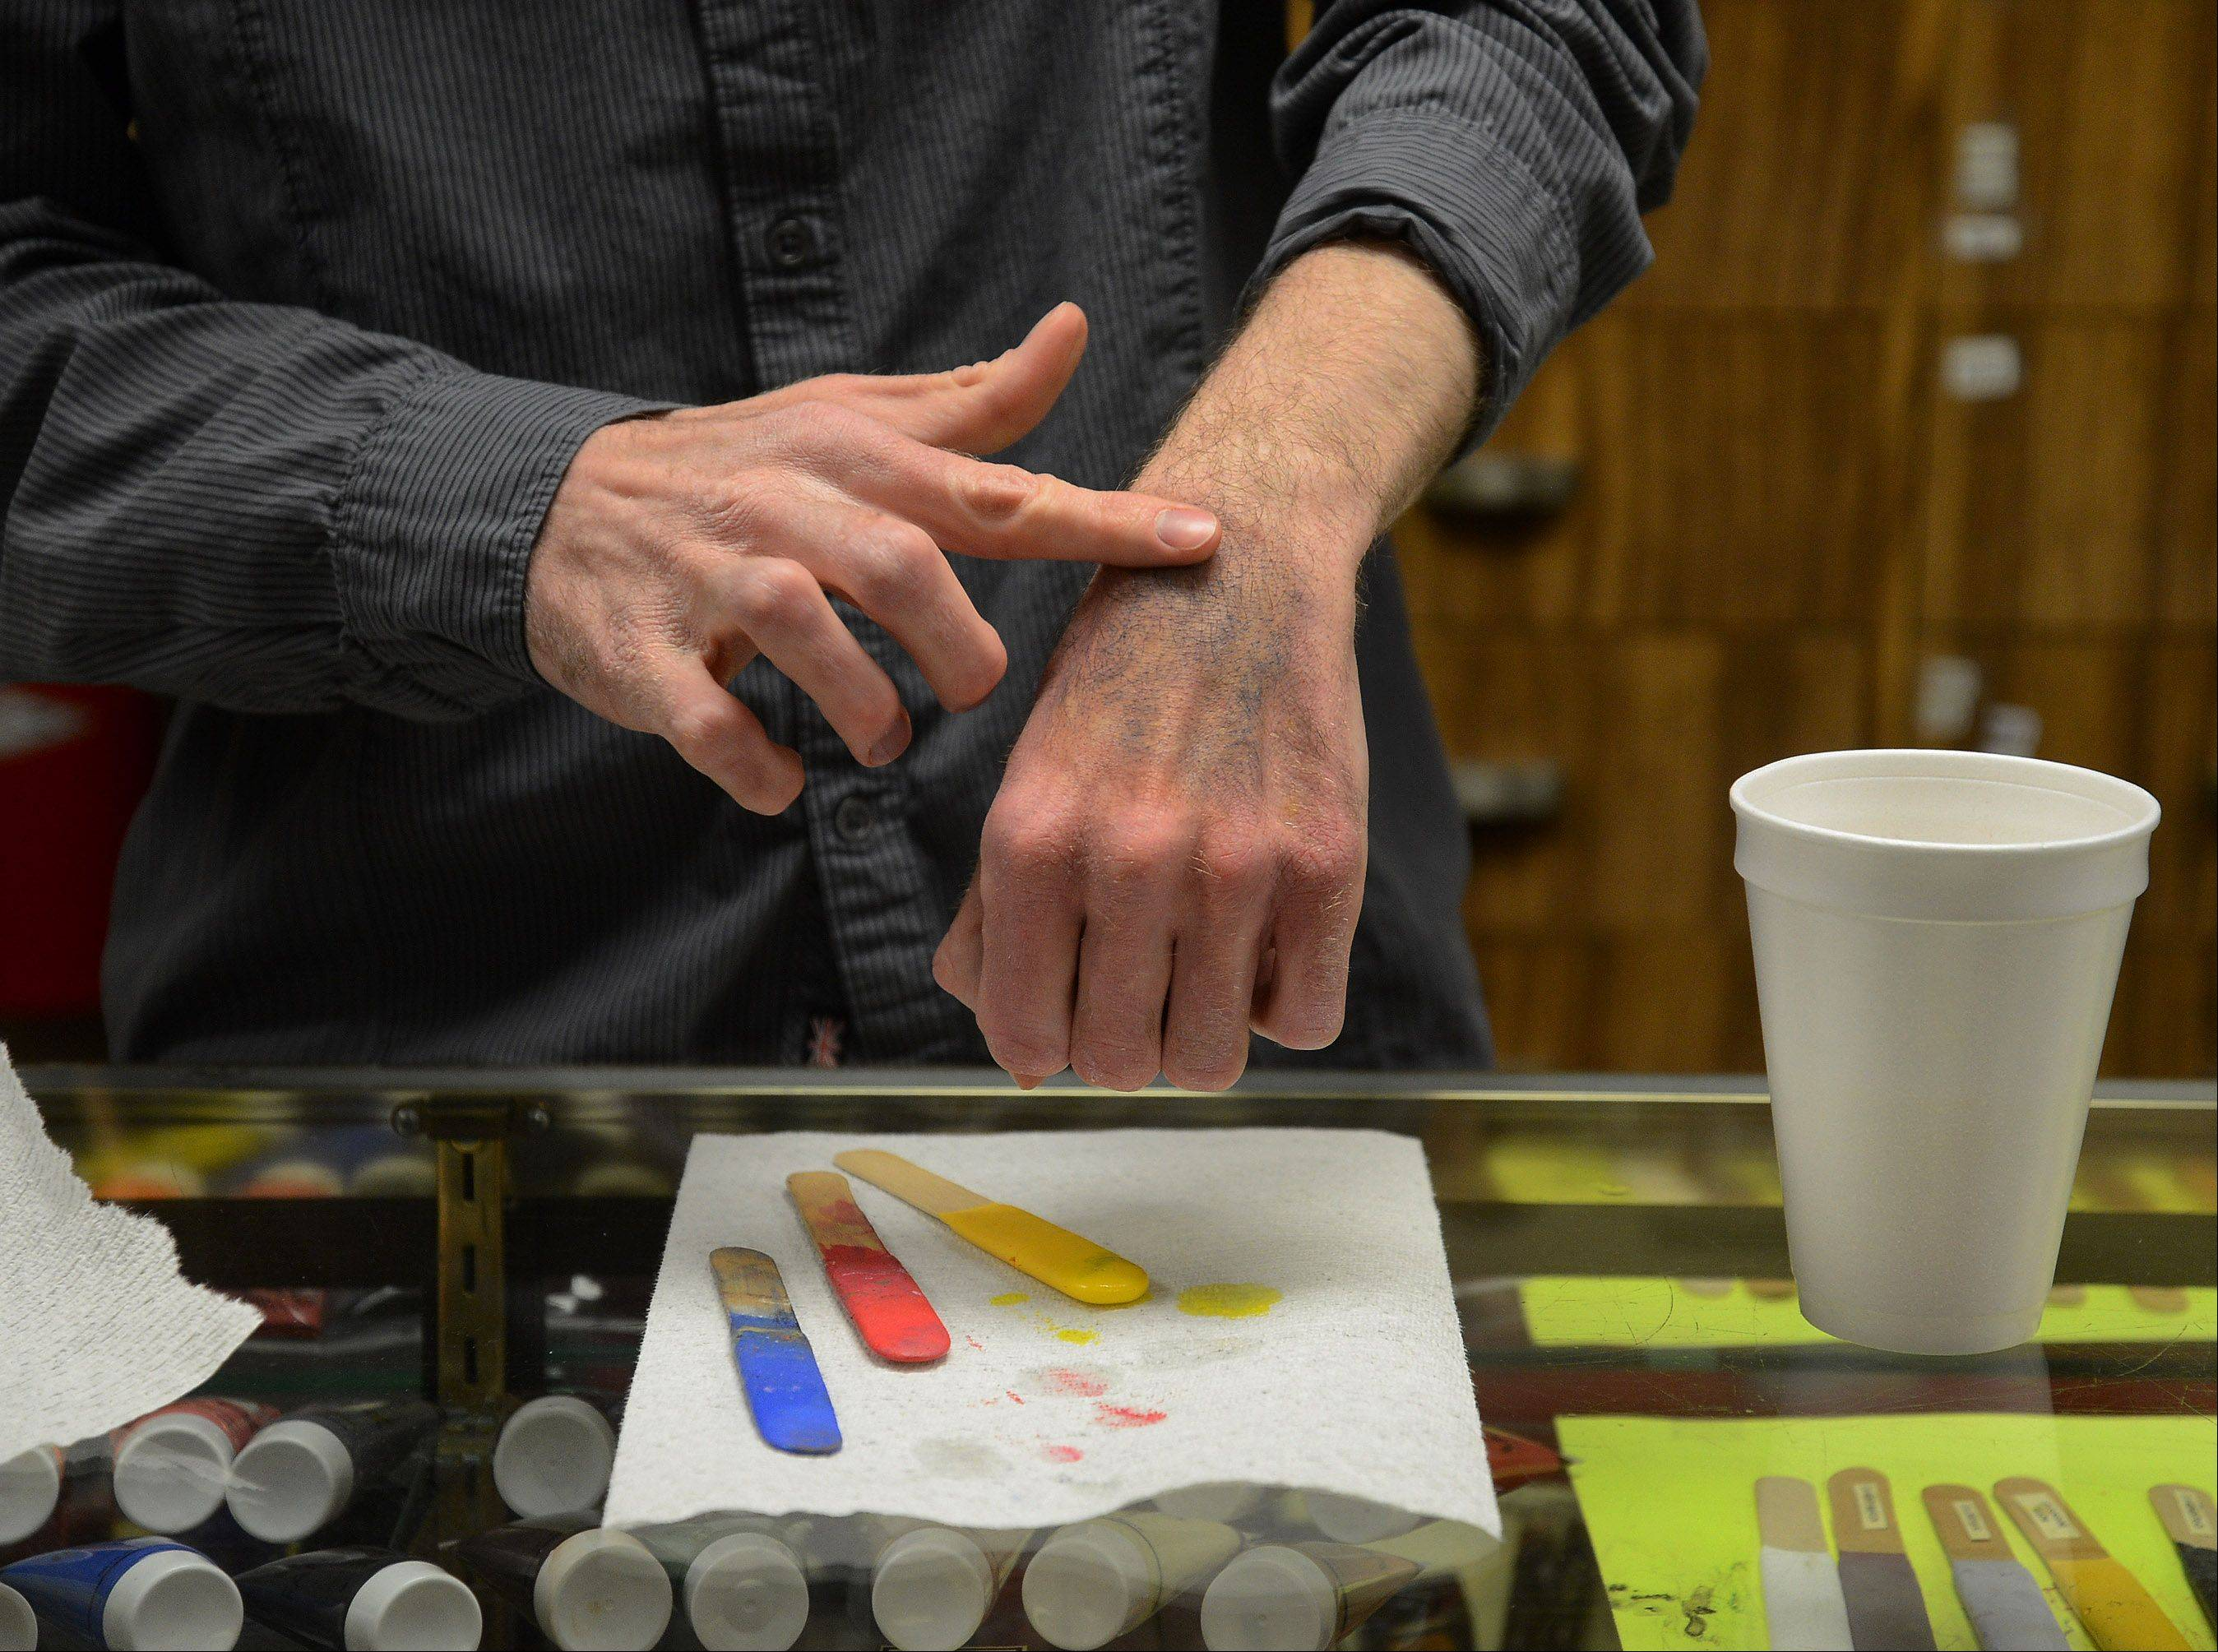 PJ's Trick Shop manager Brian Johnson uses makeup to make a bruise on his hand. The Arlington Heights store has found a new market providing realistic gore for everything from local theater productions to public disaster drills.